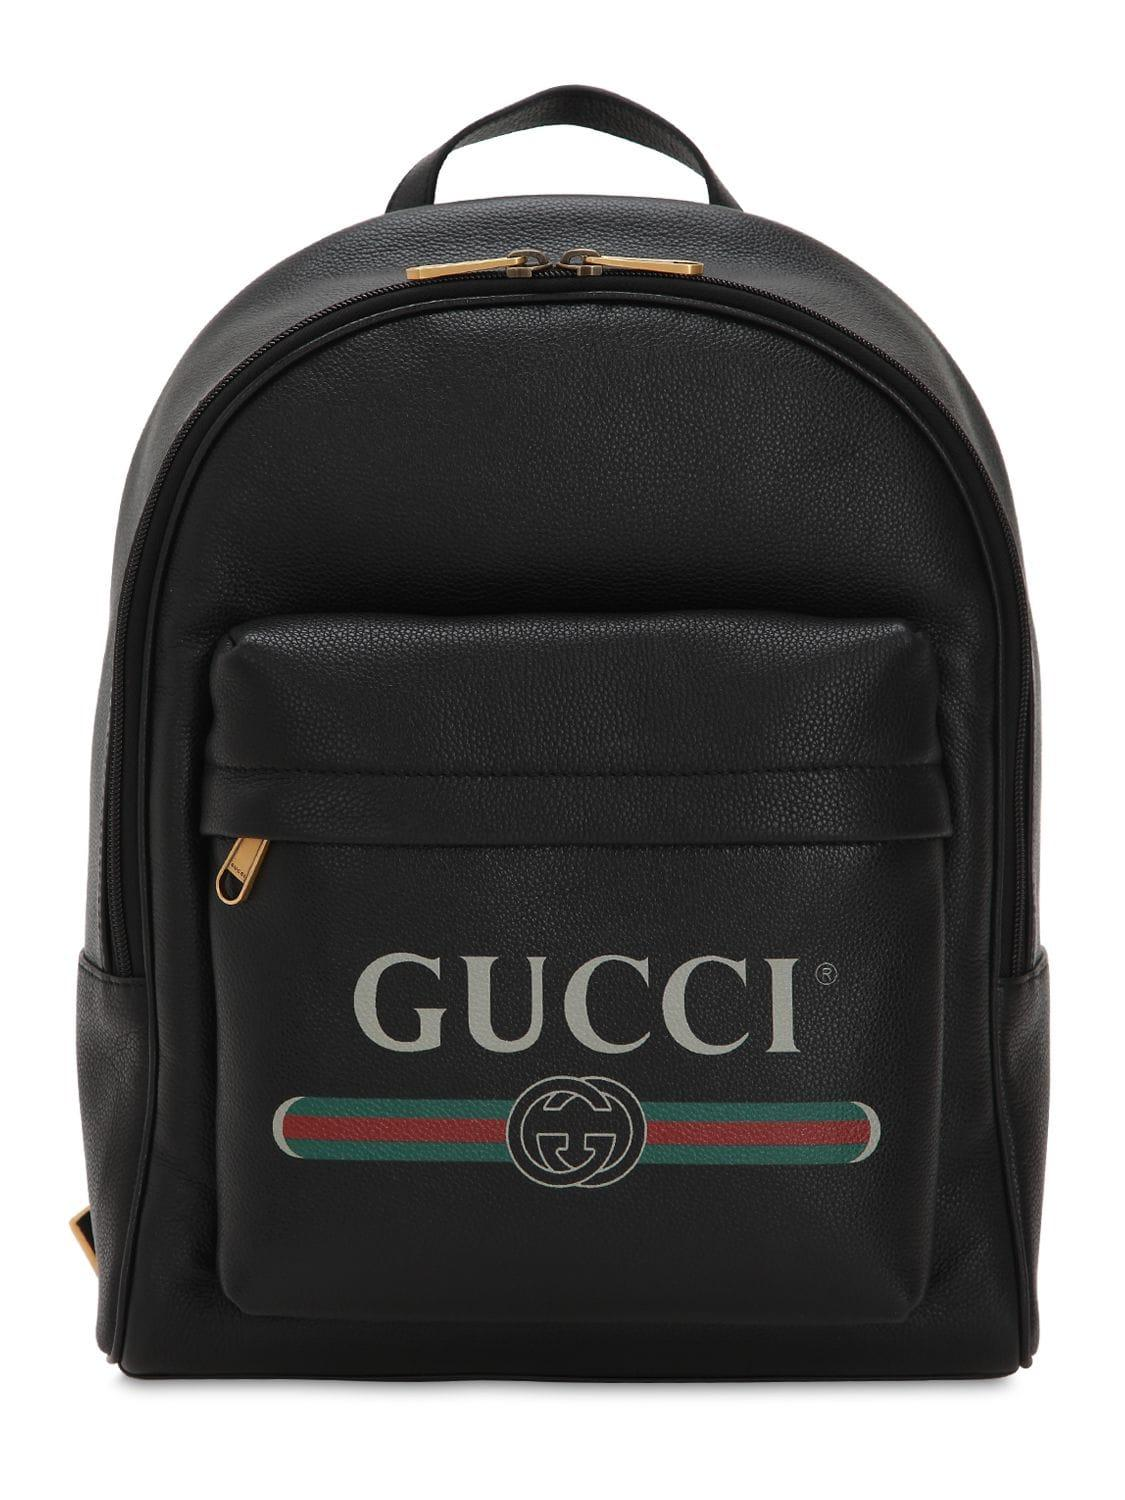 0aebfbf66bd0 Gucci - Black Logo Leather Backpack for Men - Lyst. View fullscreen